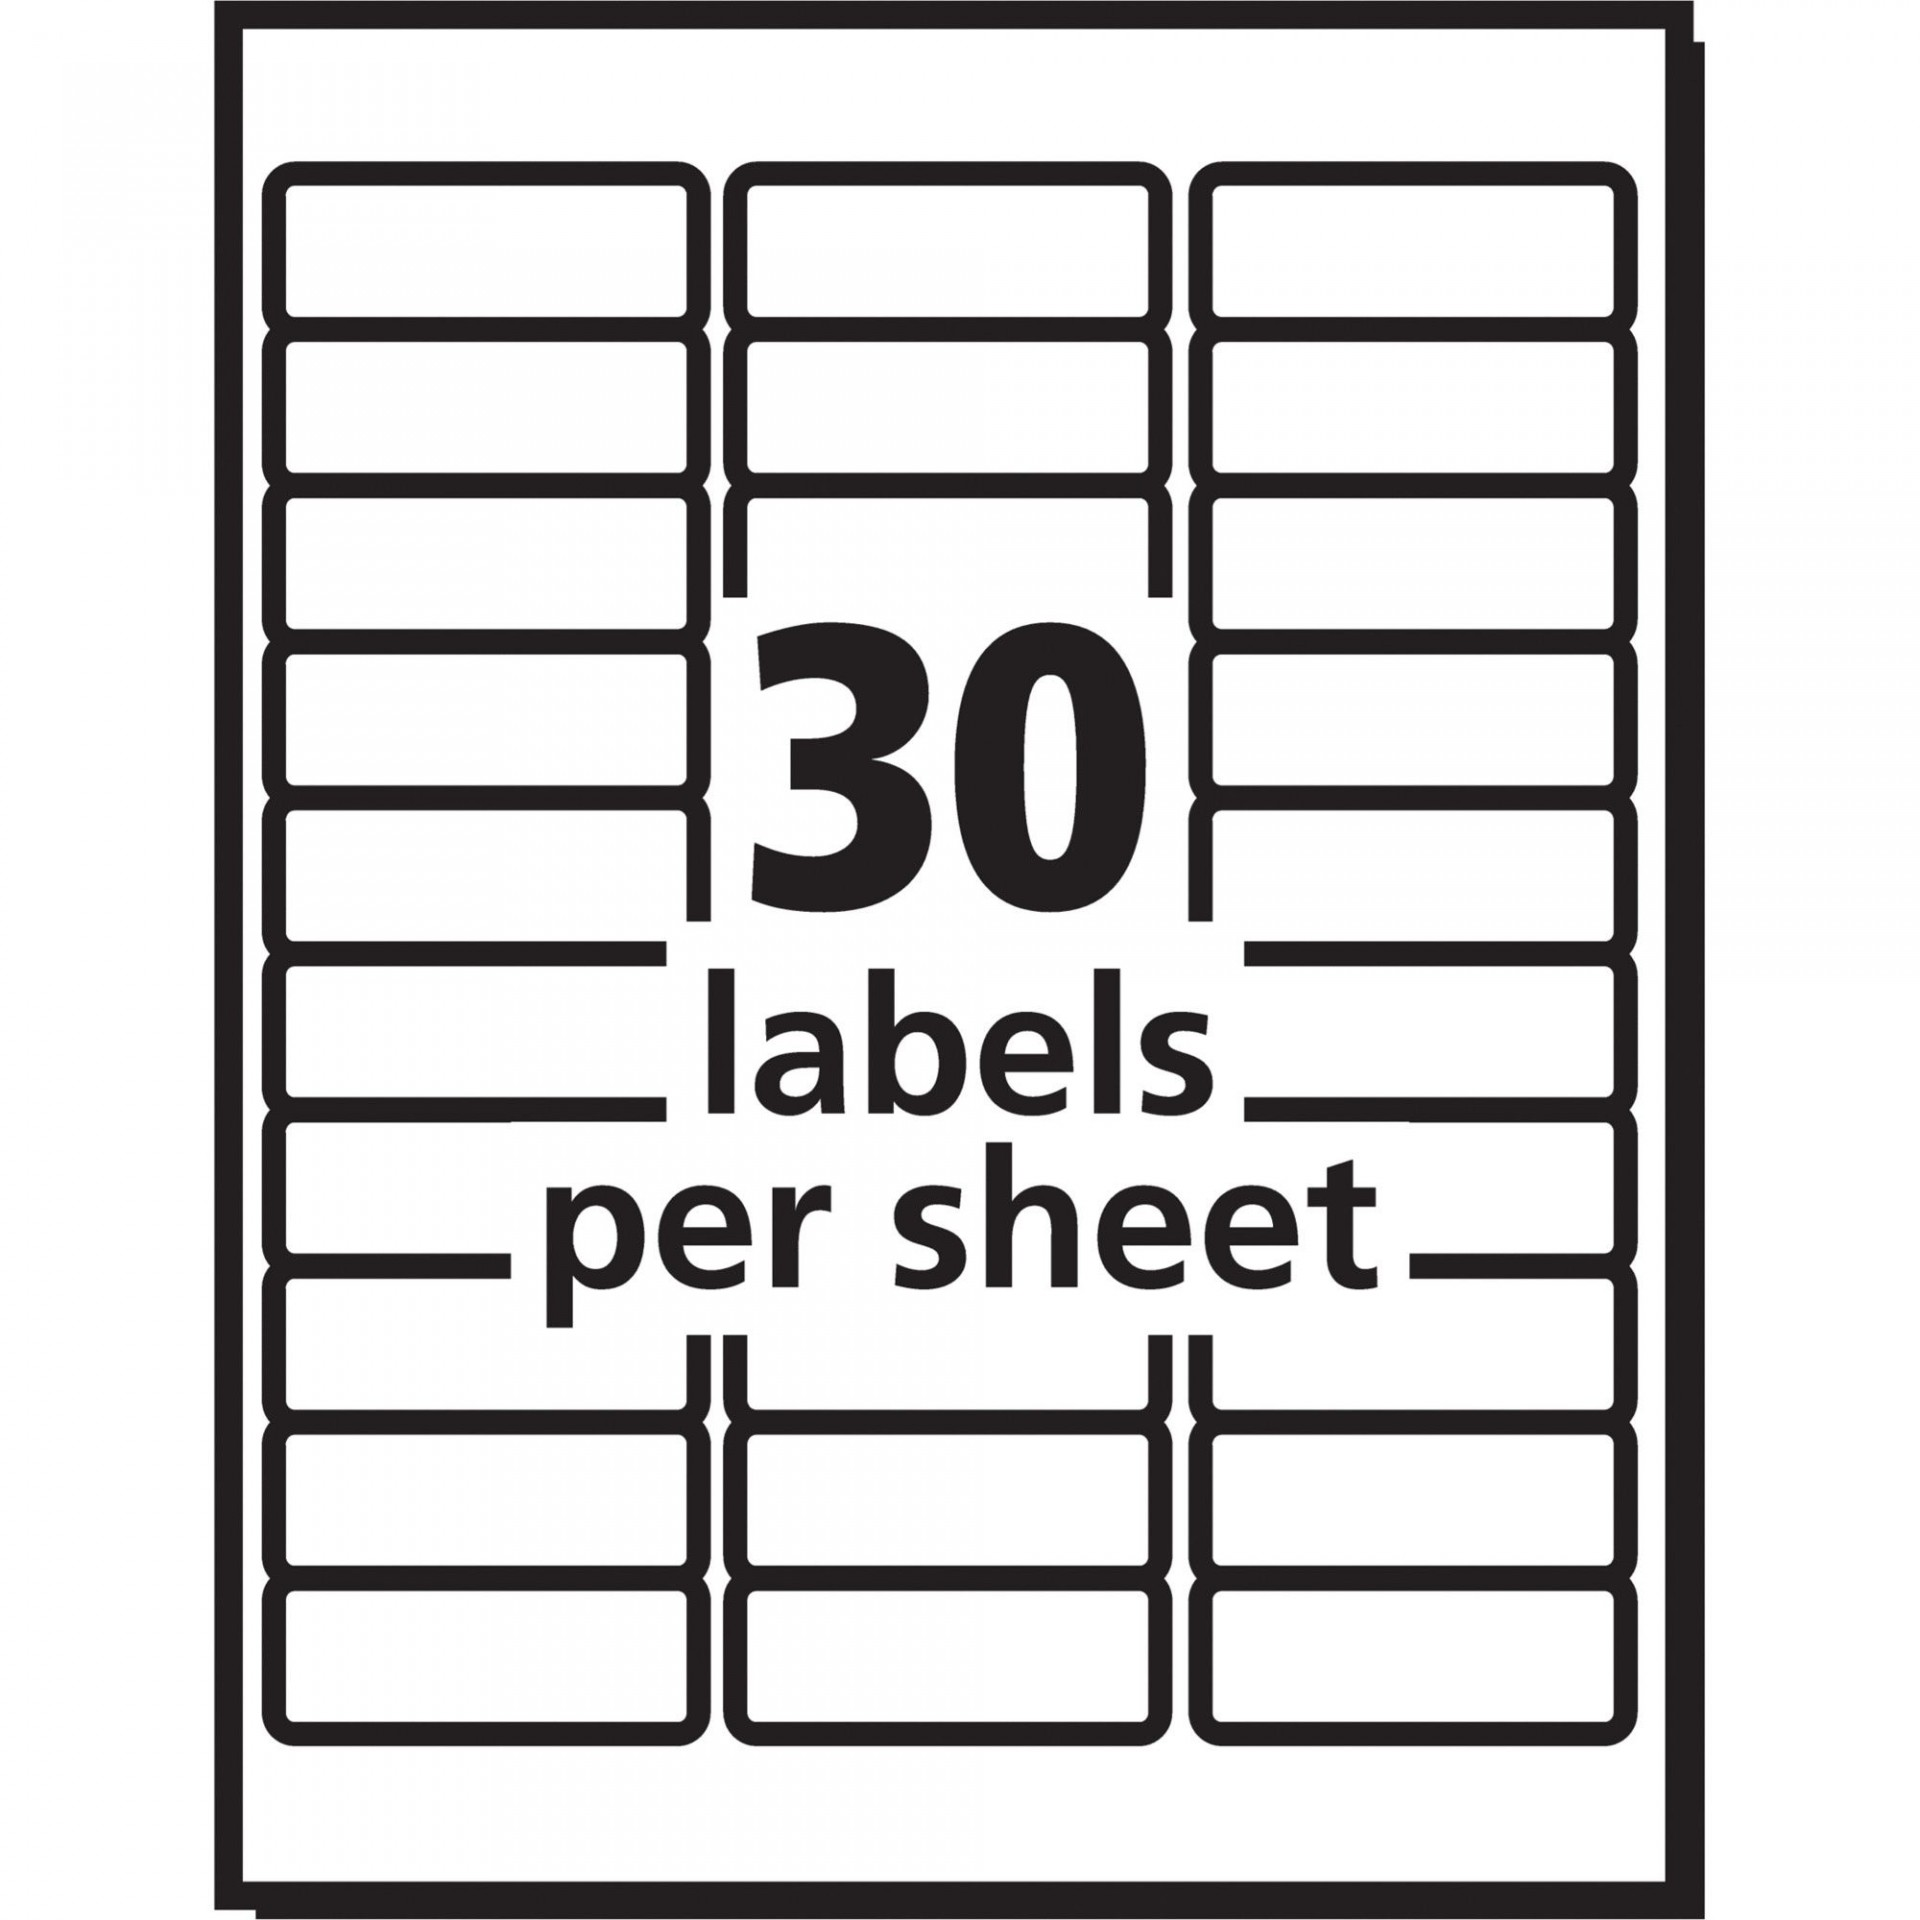 006 Excellent Addres Label Template Free Sample  Cute Shipping Return Word1920